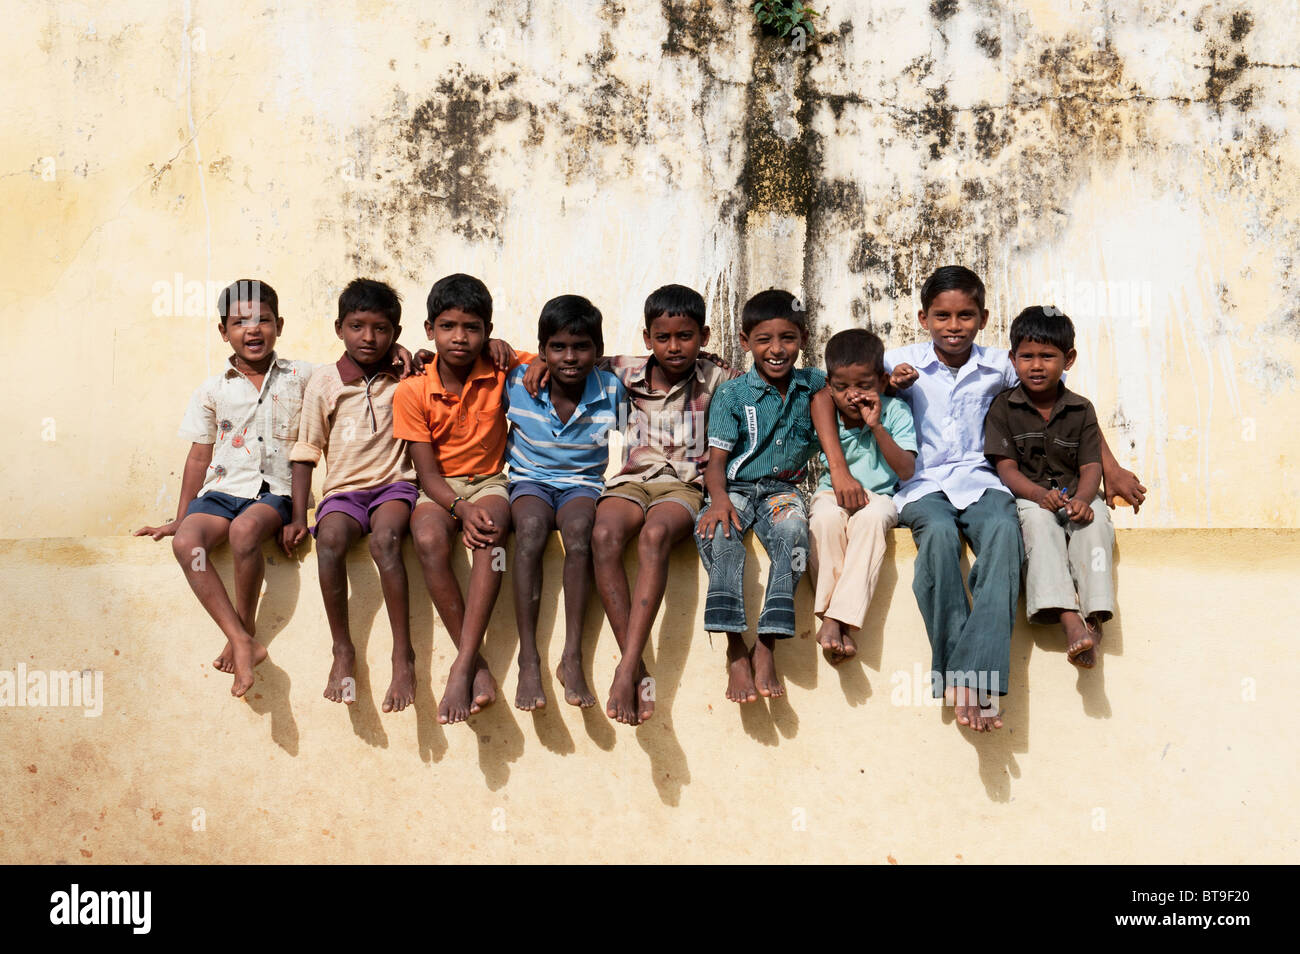 Rural South Indian village boys sitting on school wall in bright sunlight. Andhra Pradesh, India - Stock Image